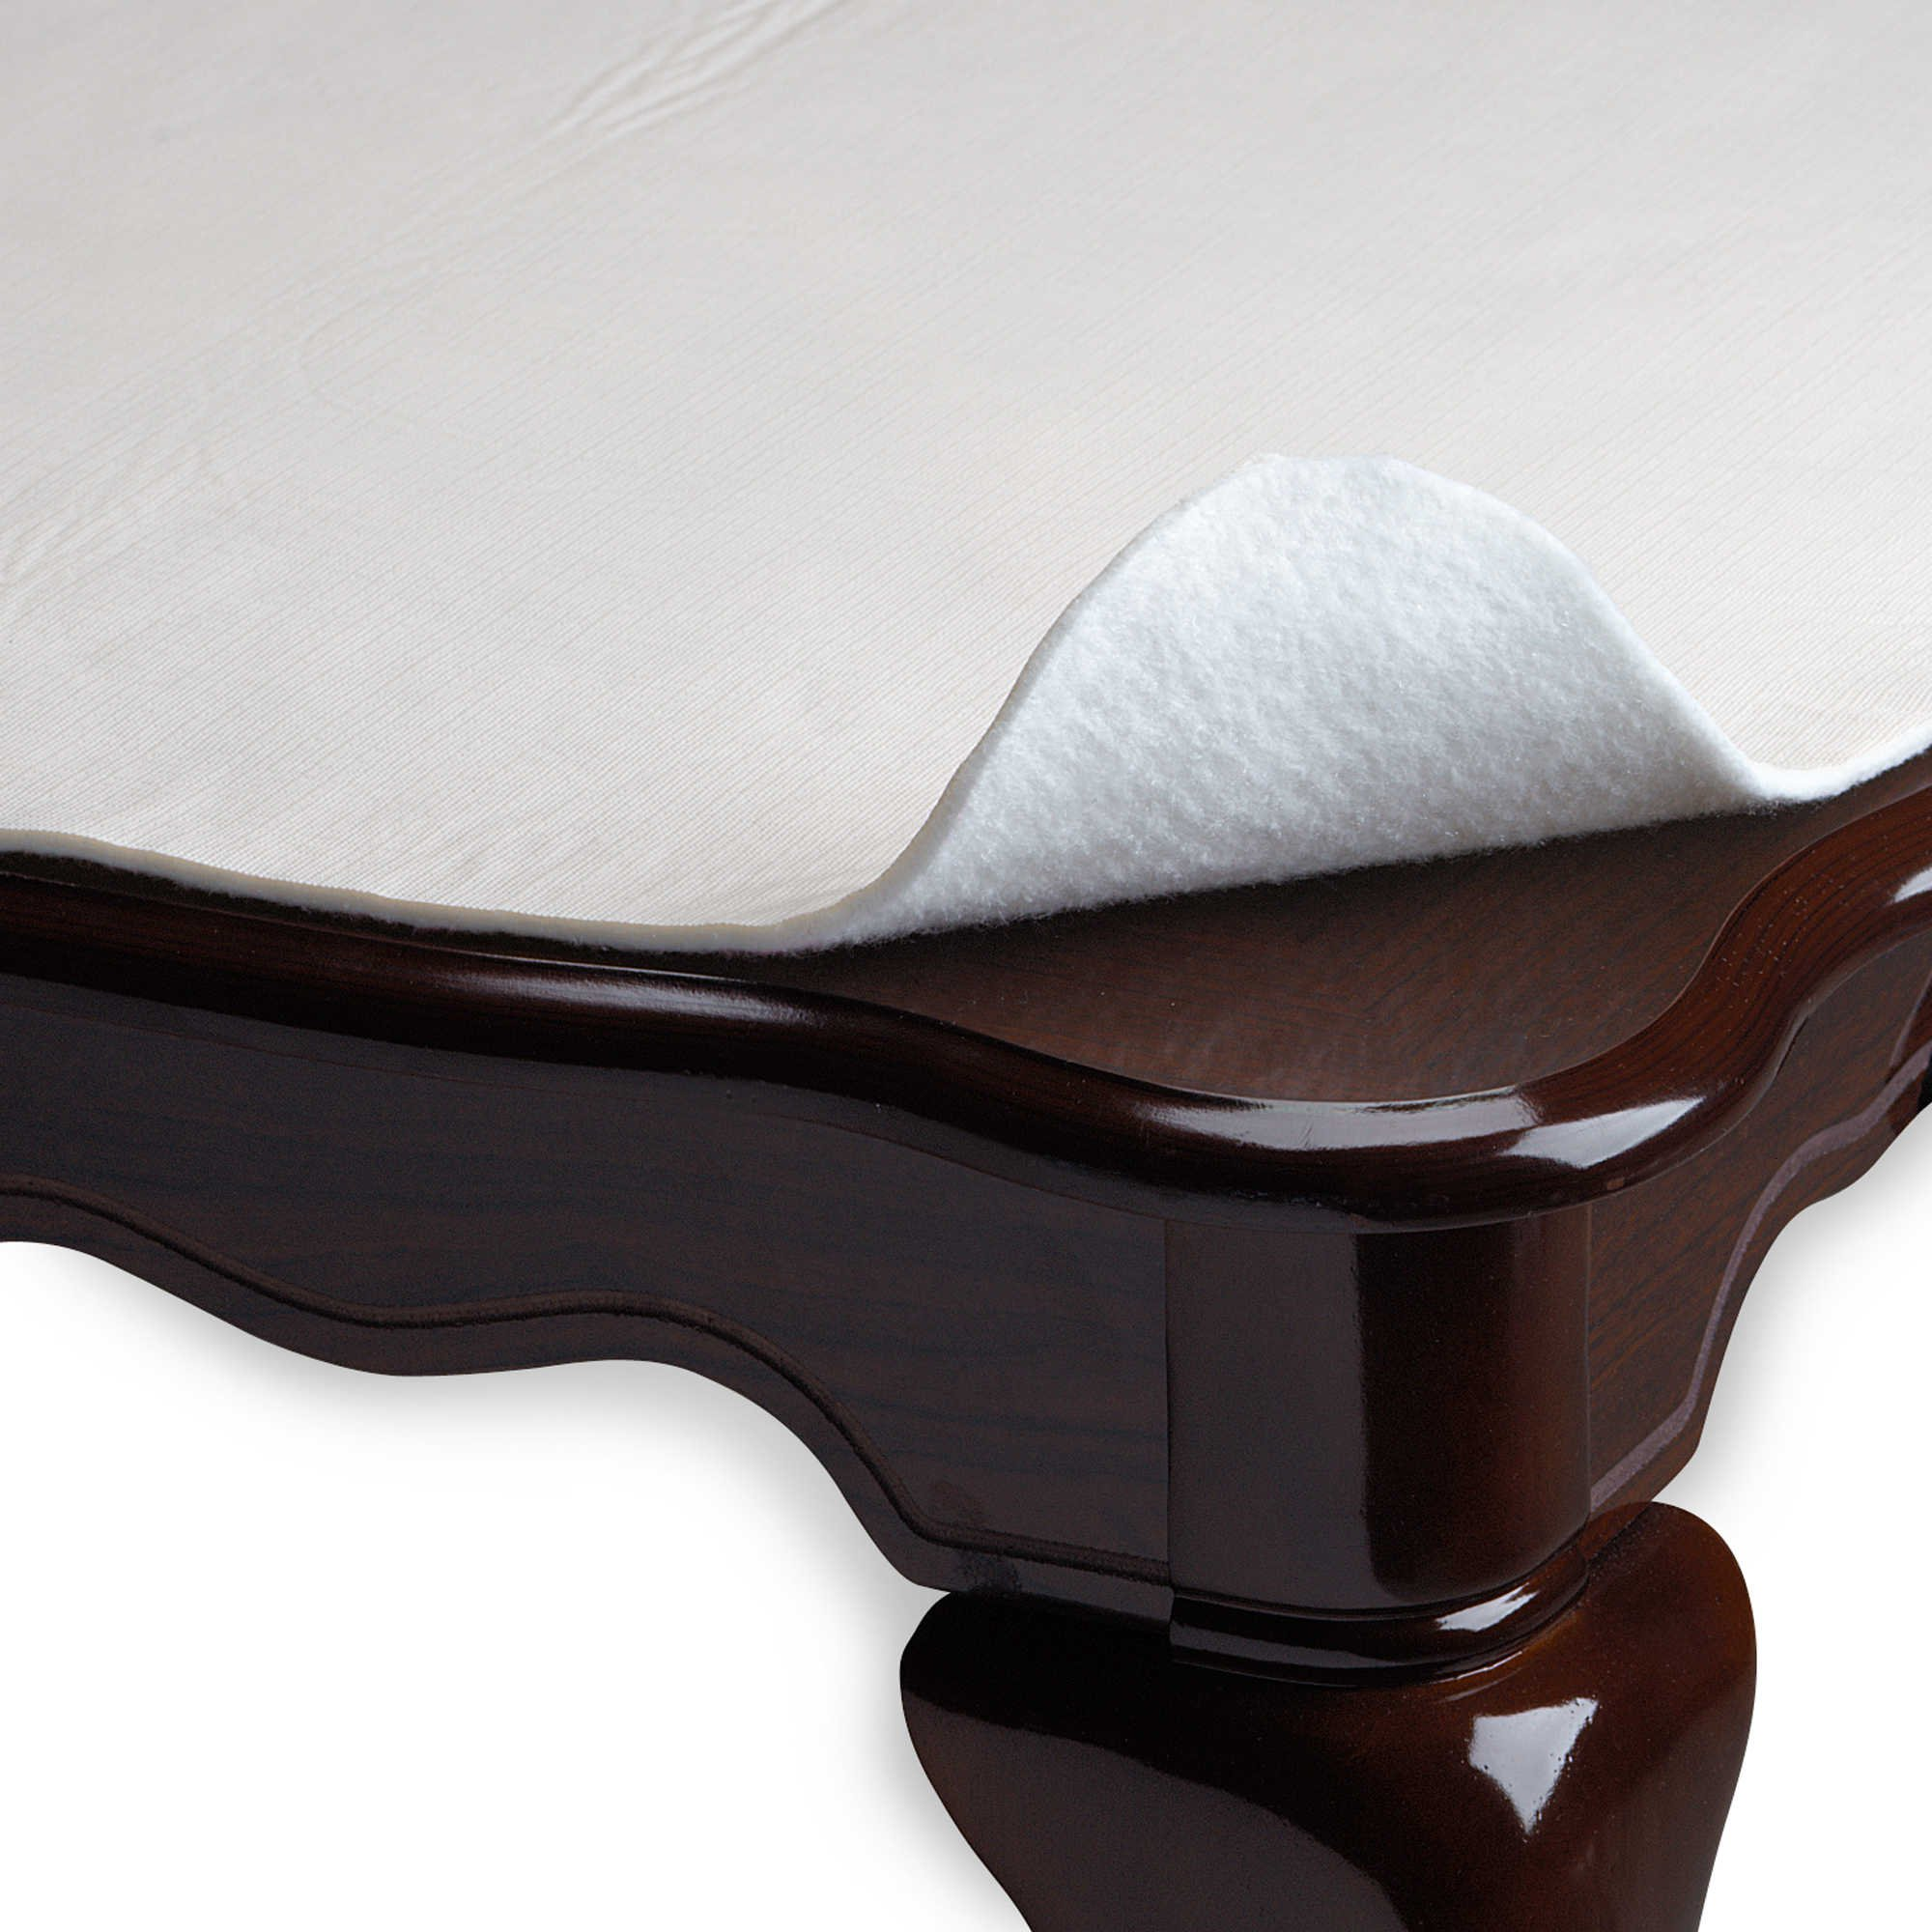 Vinyl Table Pad 52-Inch x 70-Inch Oblong Ivory, Helps Protect Tables from Scratches and Spills